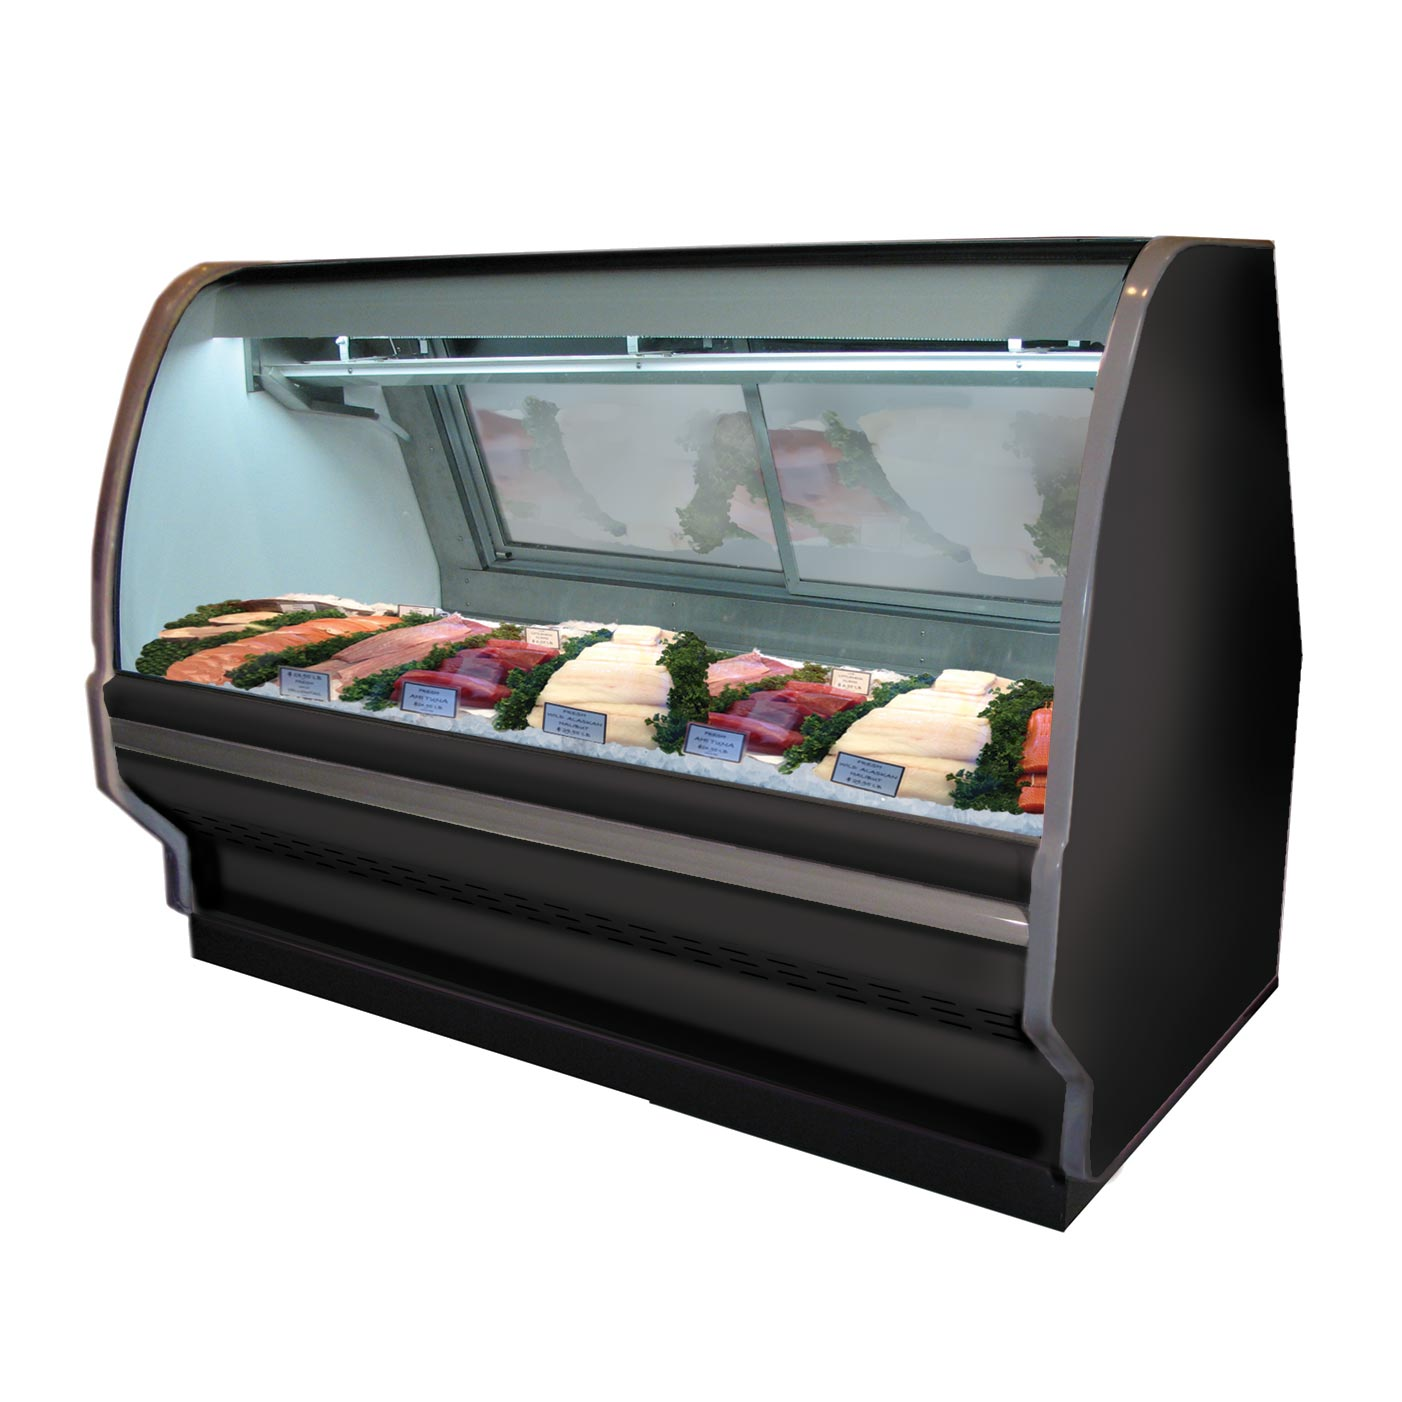 Howard-McCray R-CFS40E-6-LED display case, deli seafood / poultry